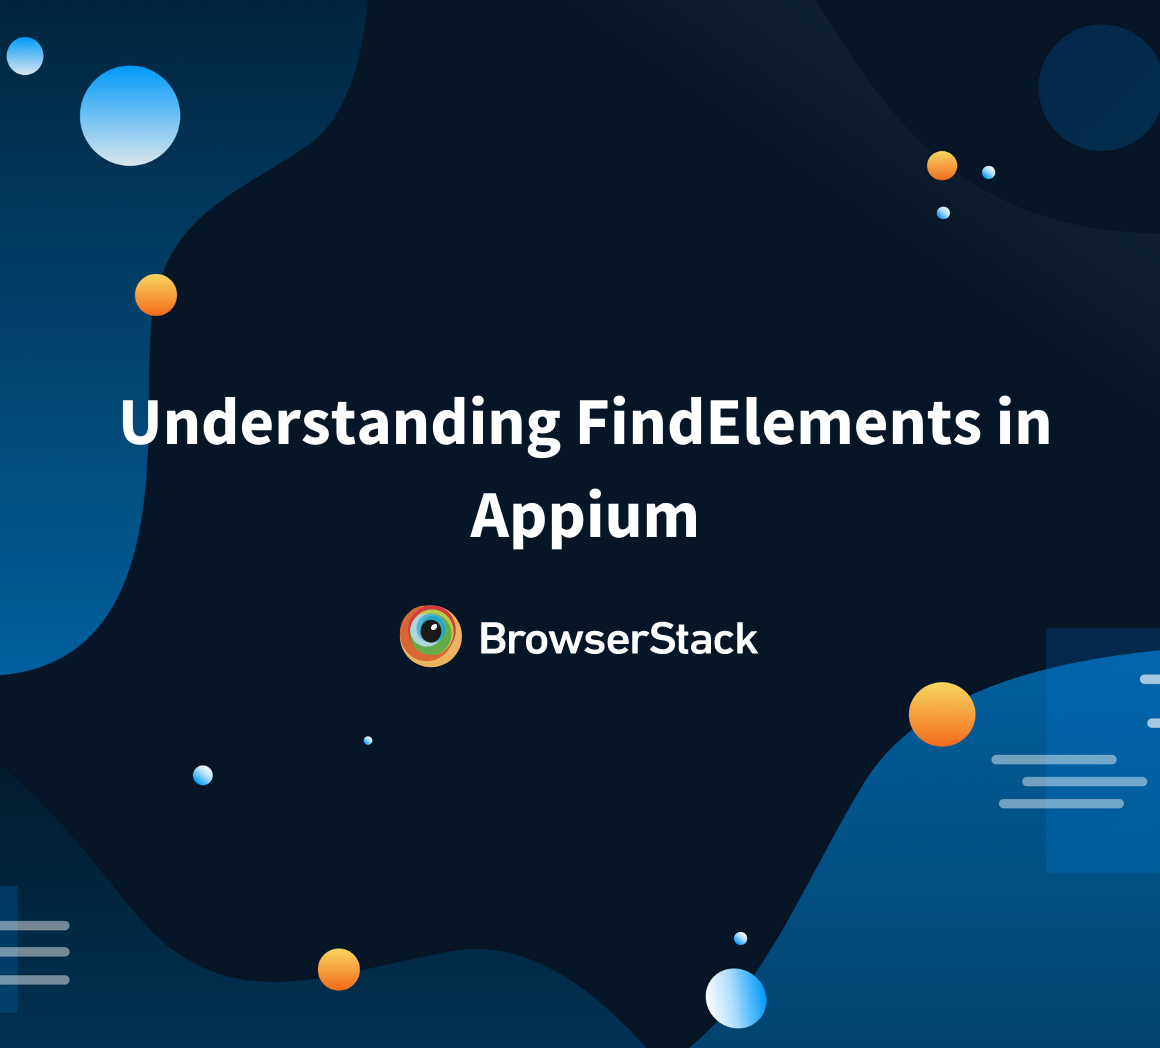 findelement and findelements in Appium